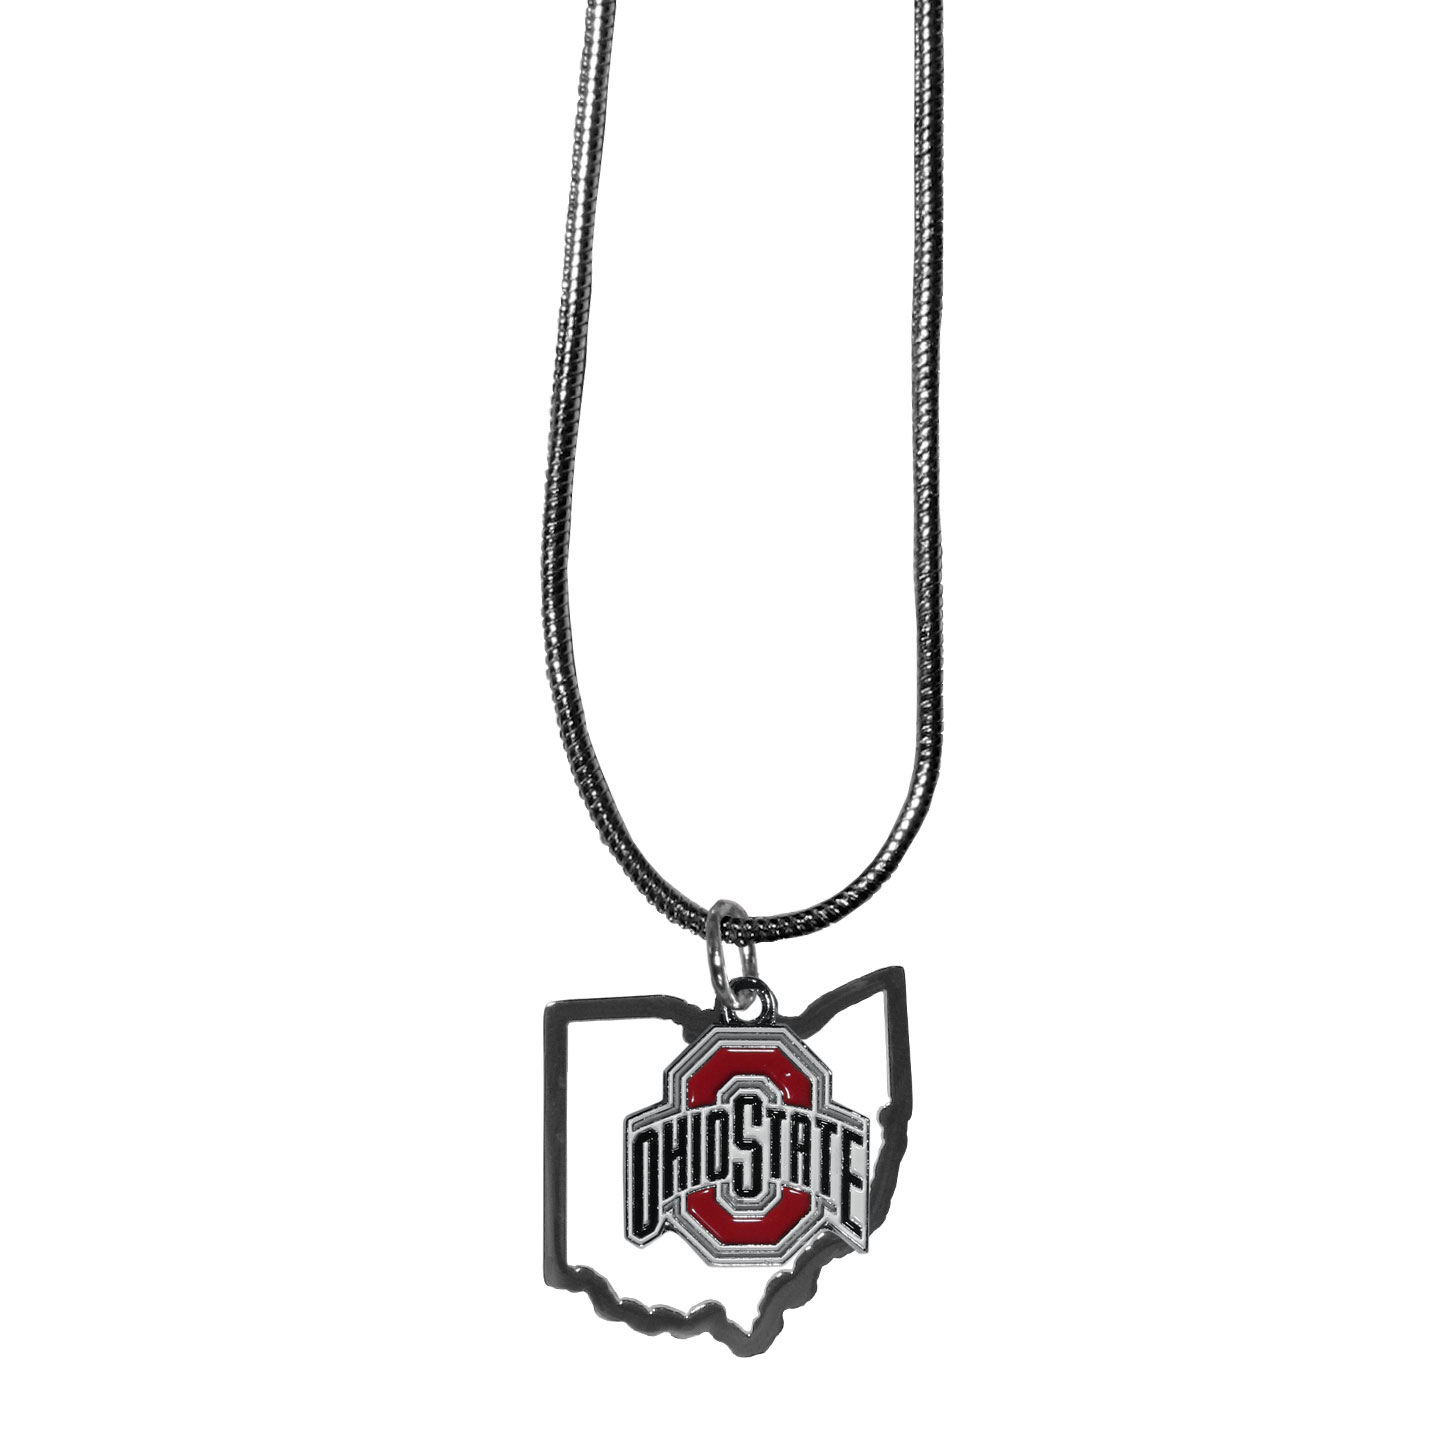 Ohio St. Buckeyes State Charm Necklace - Get in on the trend! State themes are a trend that just keeps getting more popular and these necklaces take the state style and give it a sporty twist with a Ohio St. Buckeyes added to the state outline charm. The come on a snake chain that is 22 inches long.